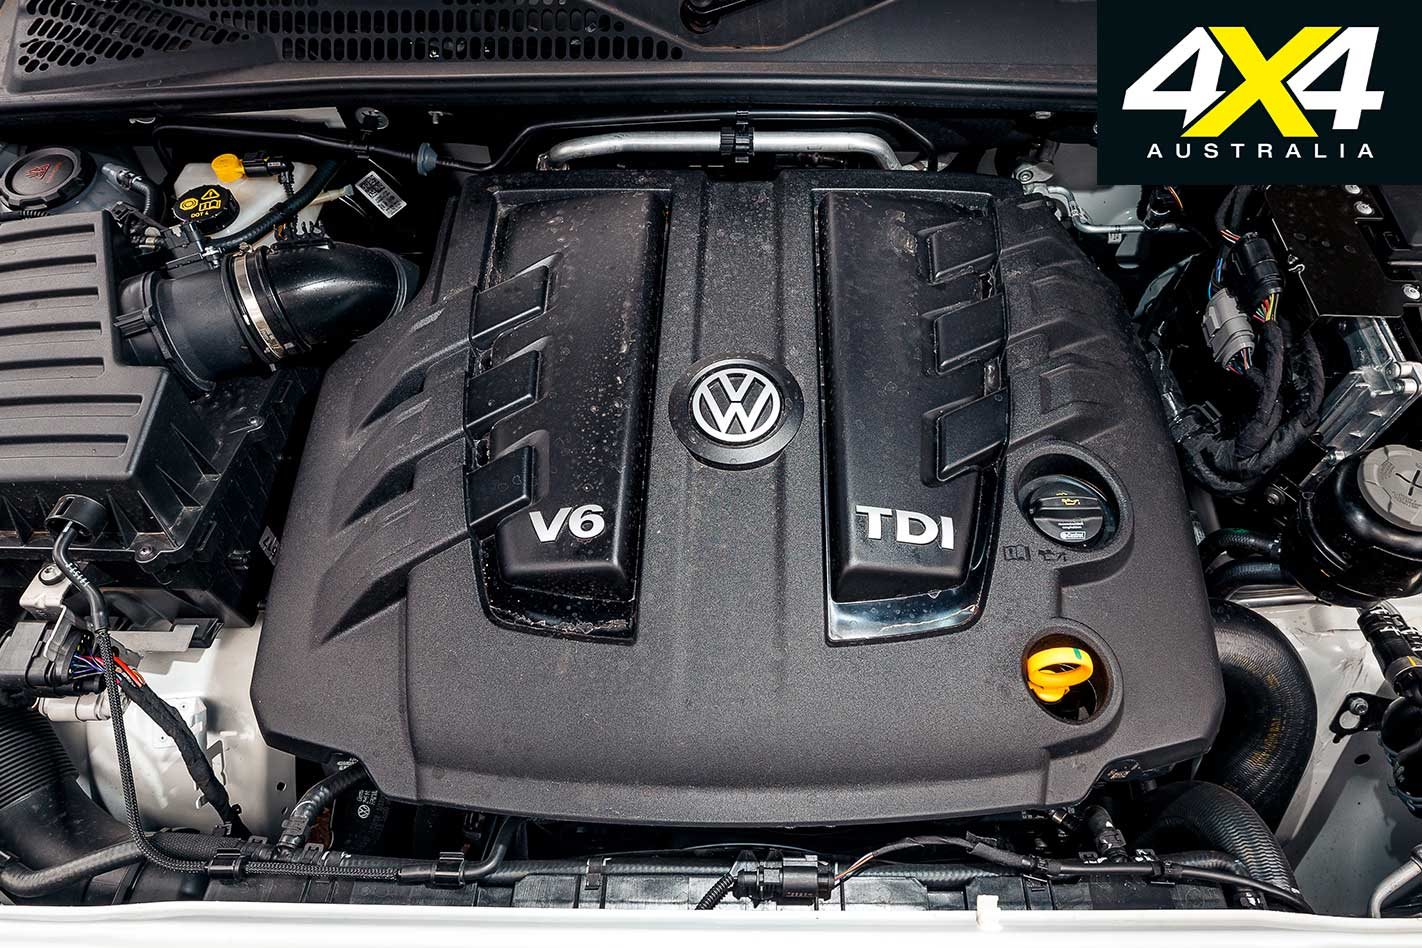 Volkswagen Amarok V6 Core review: 4x4 of the Year 2019